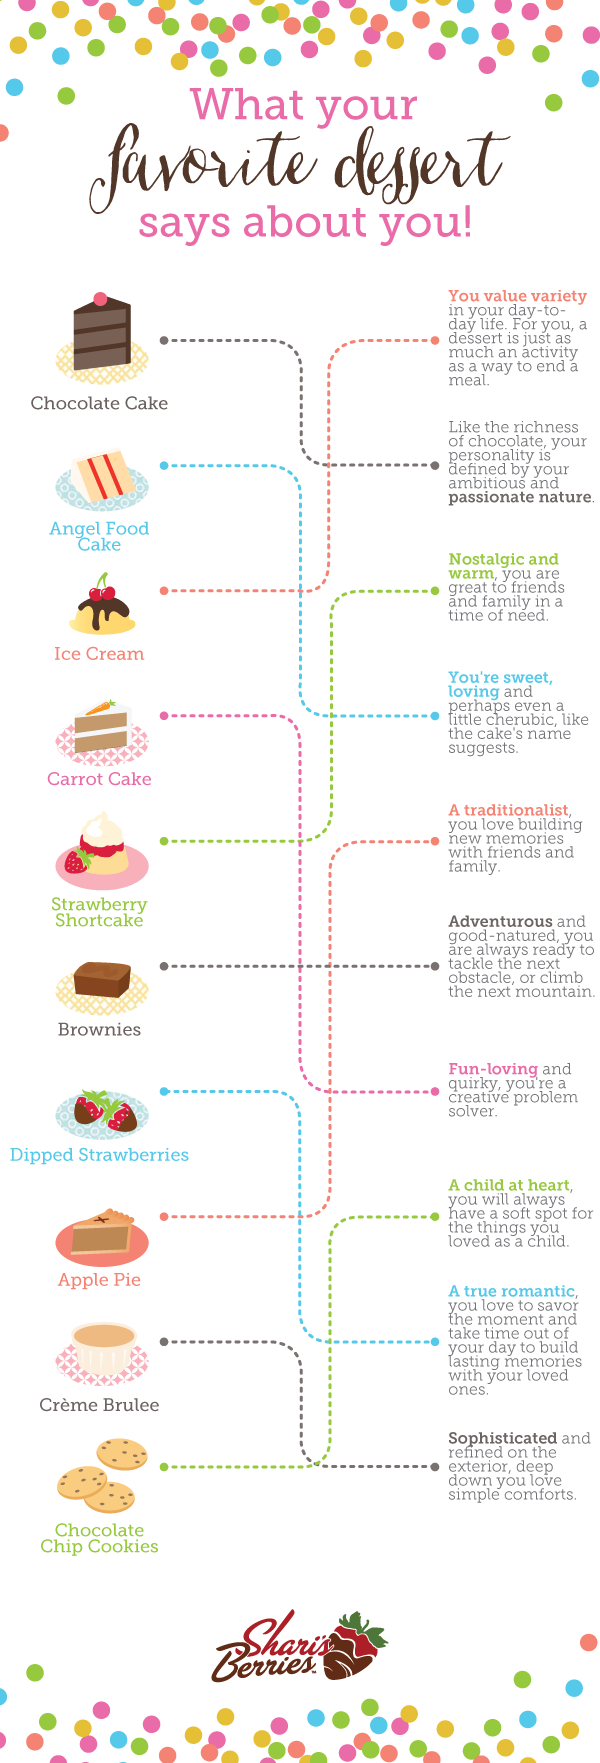 What your favorite desert says about you